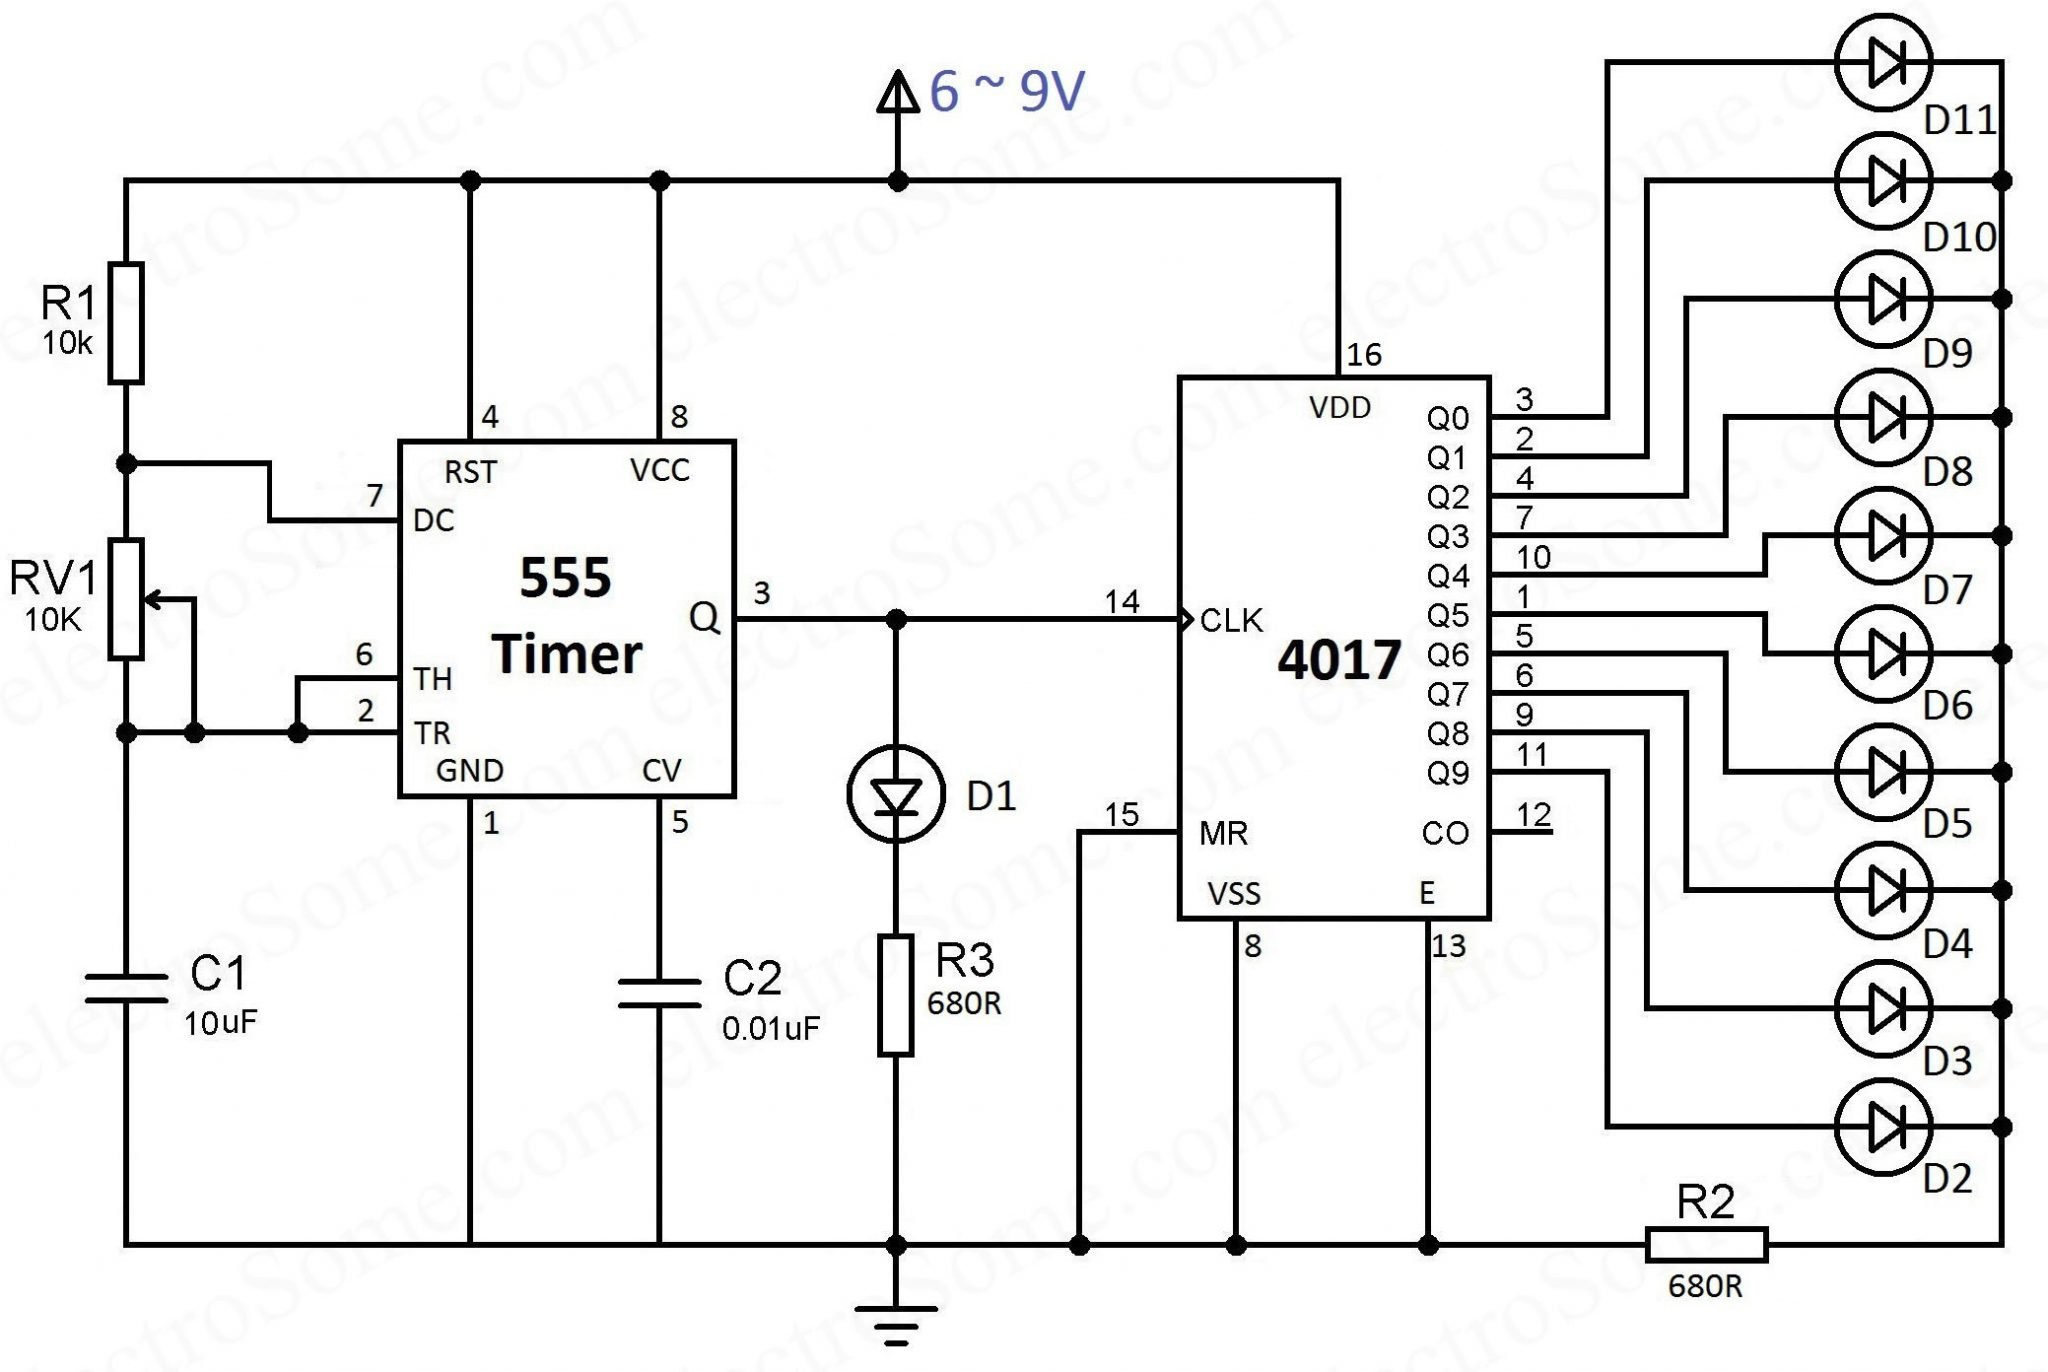 Led Chaser Using 4017 Counter And 555 Timer Make Simple Logic Circuit Design Projects Diagram